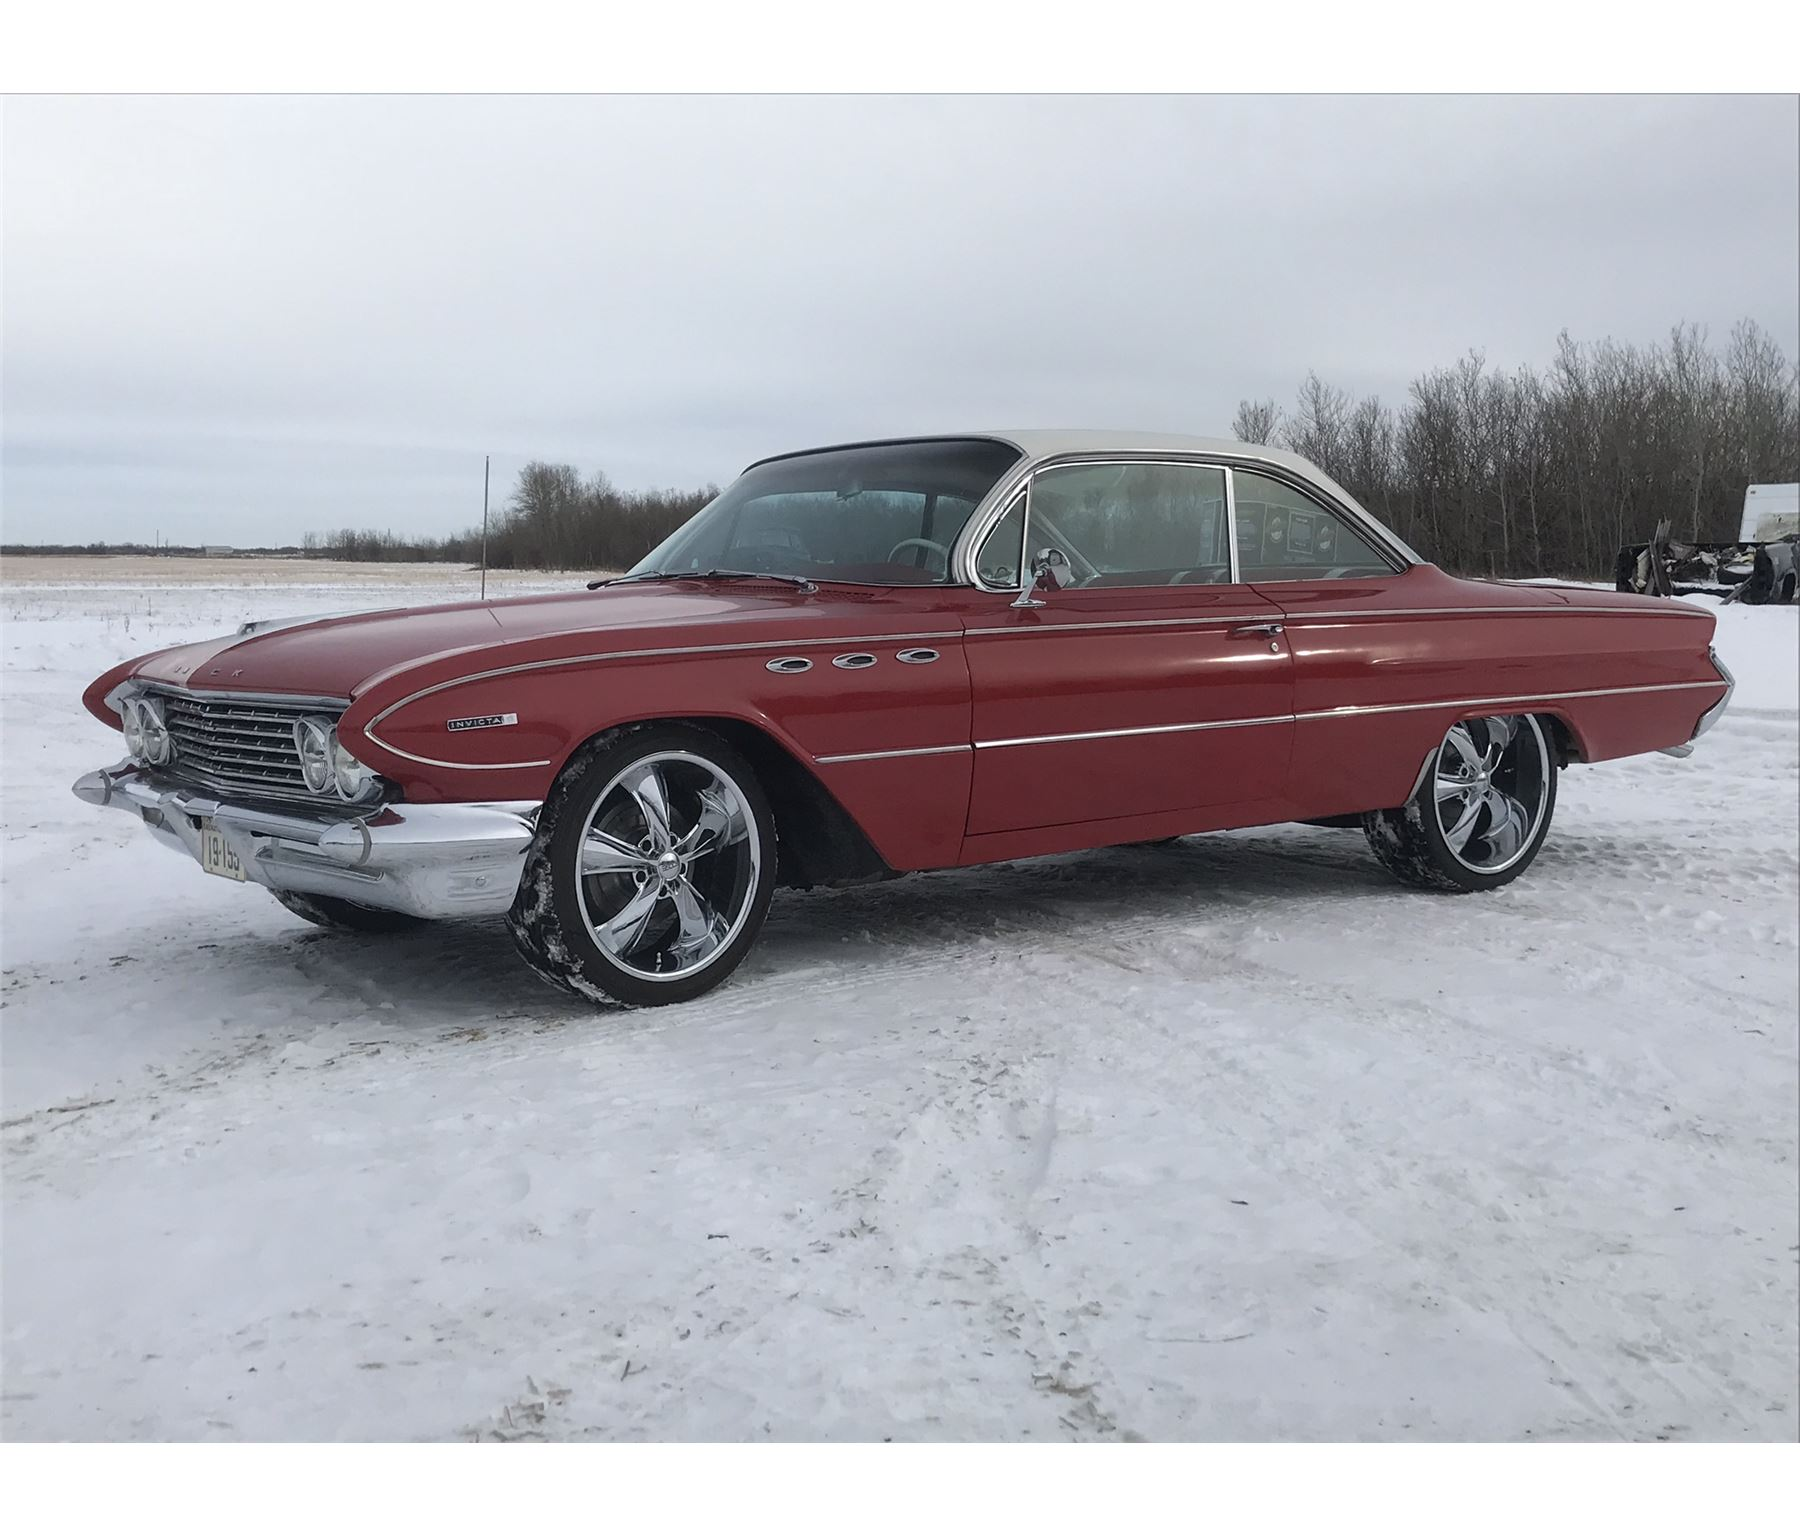 medium resolution of image 1 1961 buick invicta 2 door bubble top